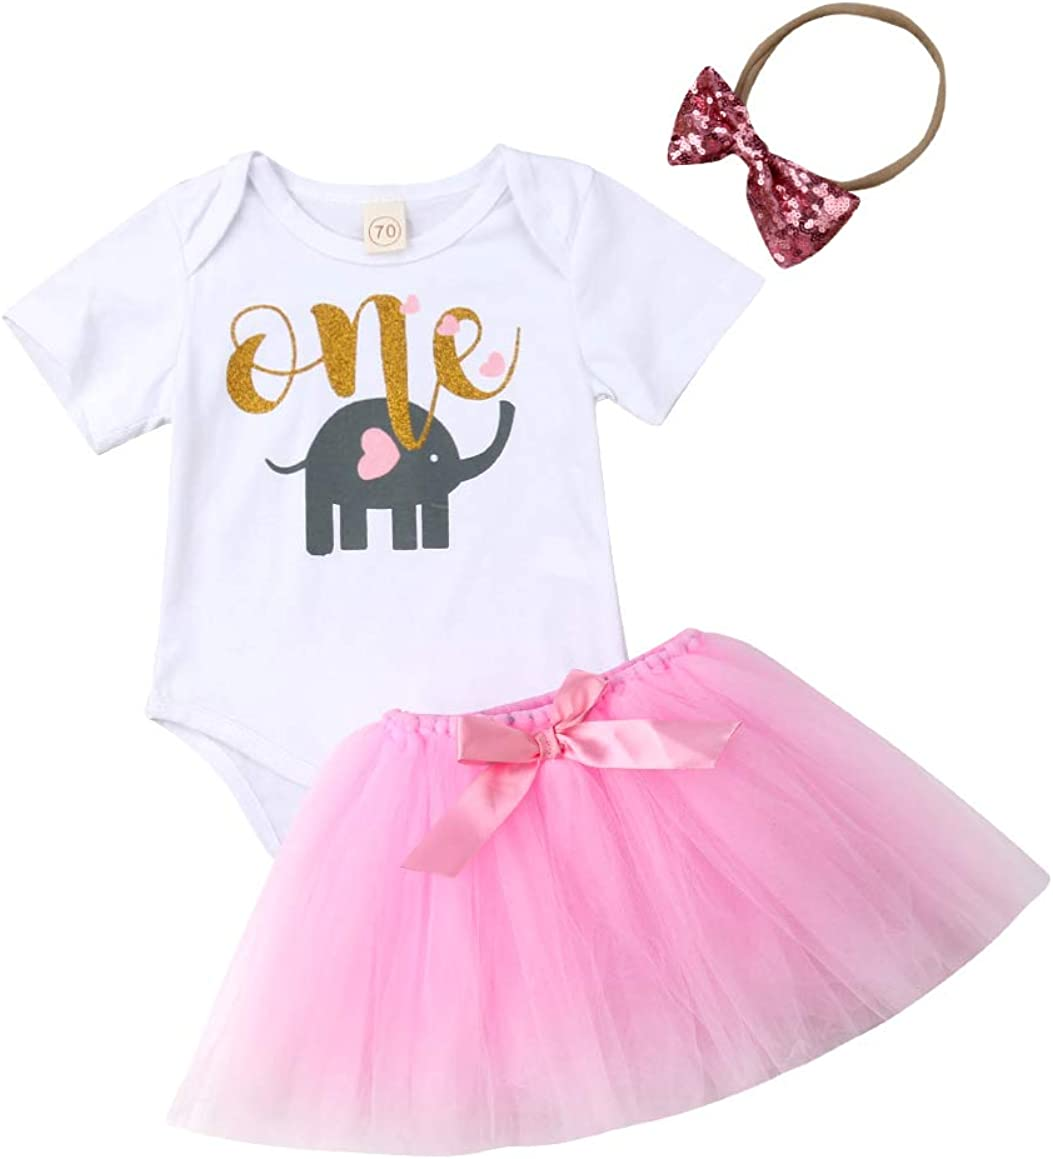 RAINBOW BABY White TUTU ROMPER DRESS headband BABY GIRL NEWBORN Princess Gift